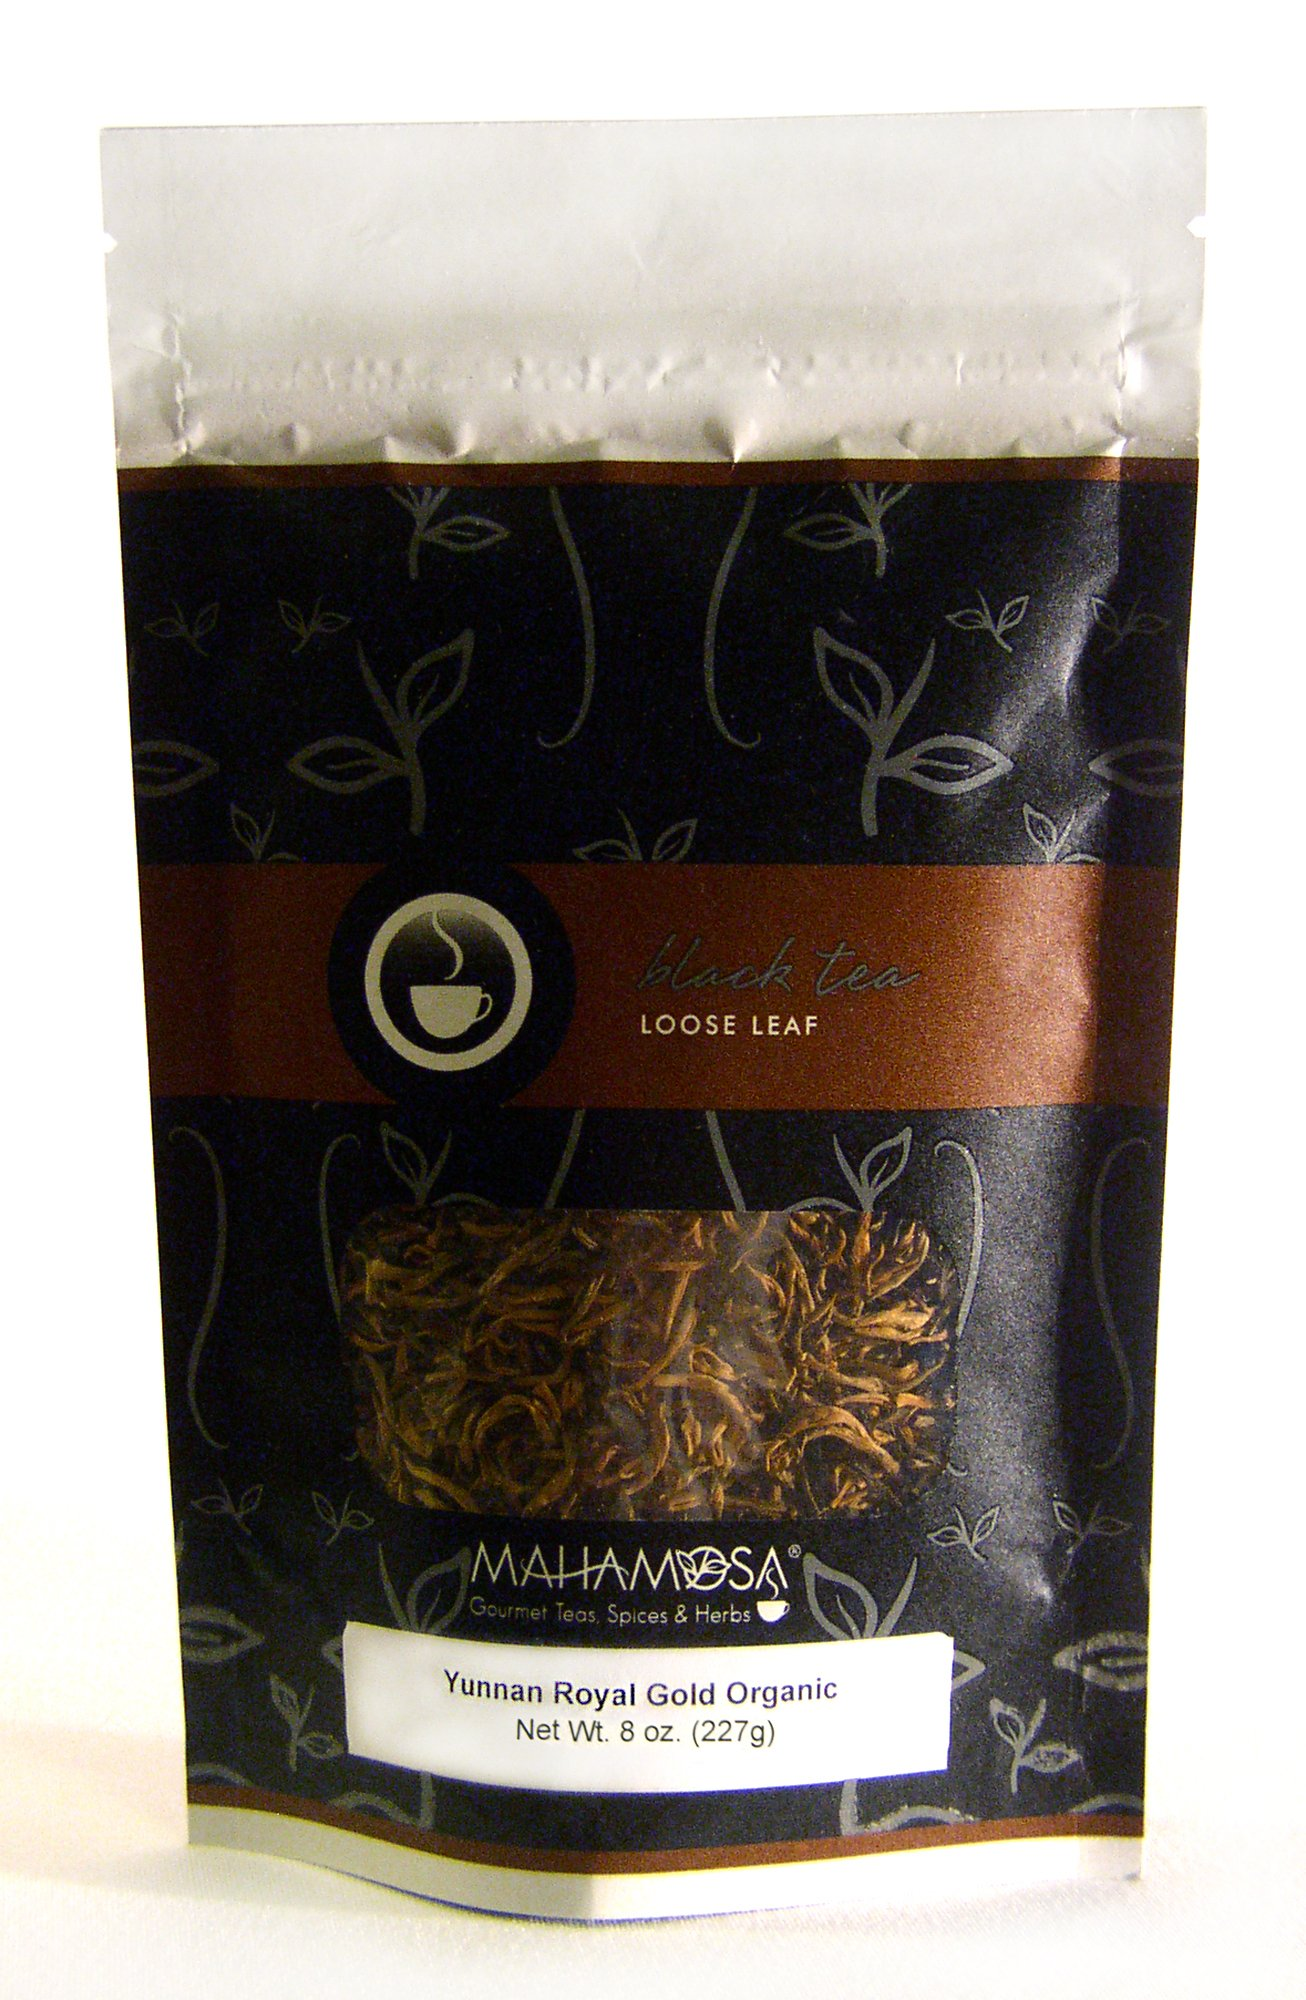 Mahamosa China Black Tea Loose Leaf (Looseleaf) - Yunnan Royal Gold Organic 8 oz